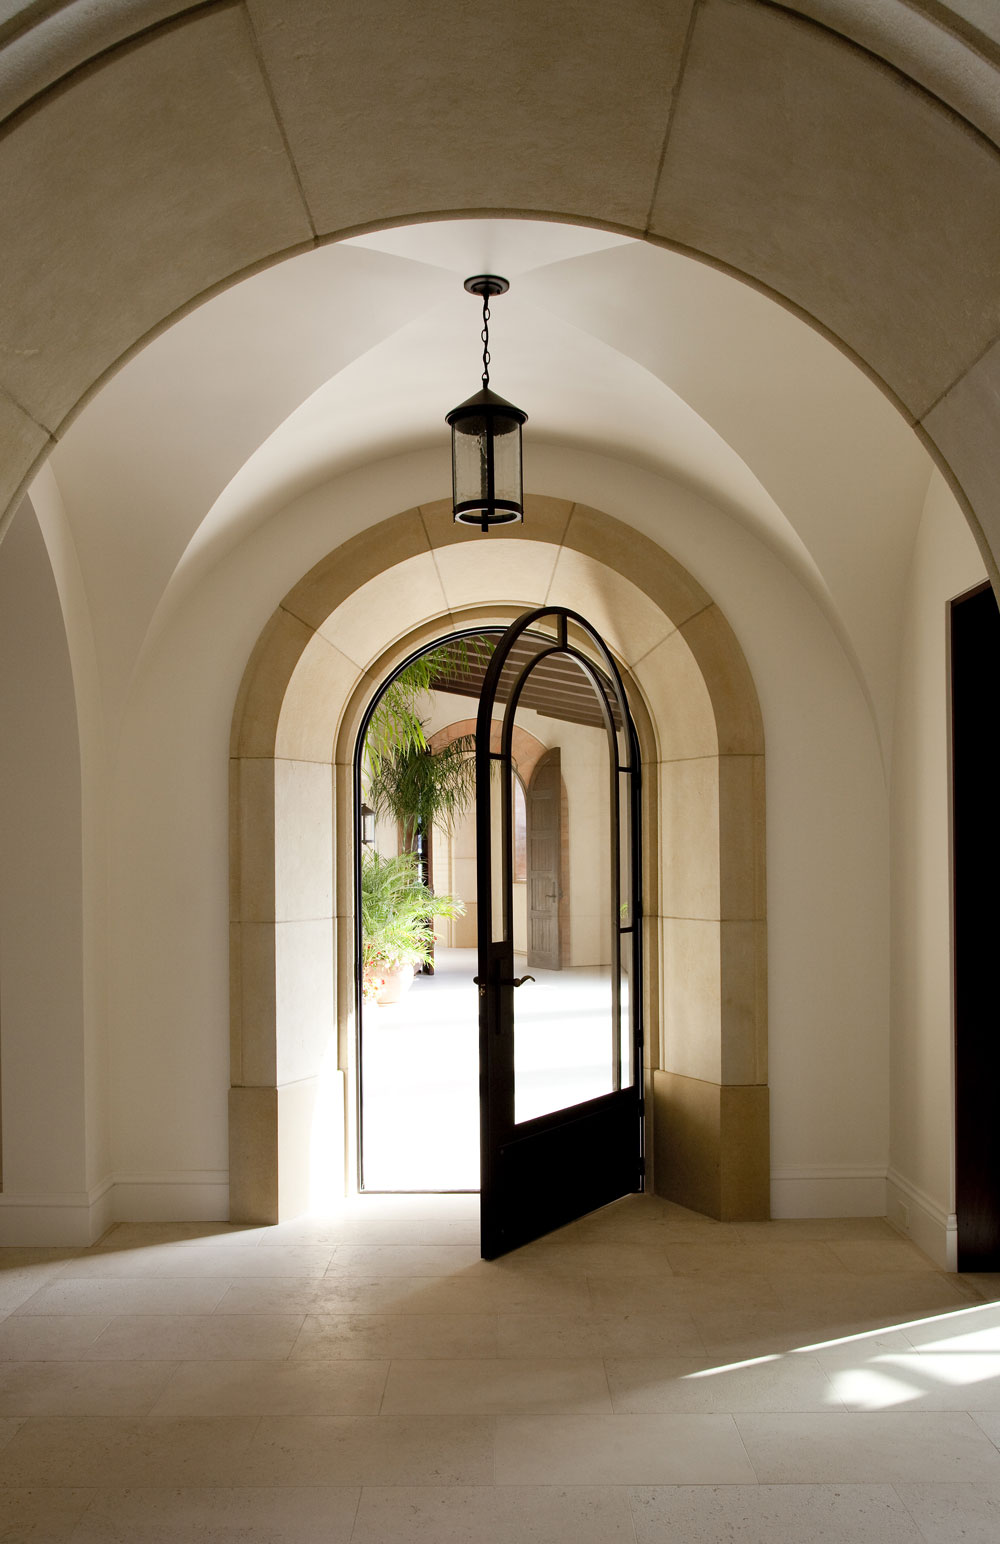 Modern-Spanish-Entryway-Cathedral-Ceiling-Arched-Doorway-Corbin-Reeves.jpg